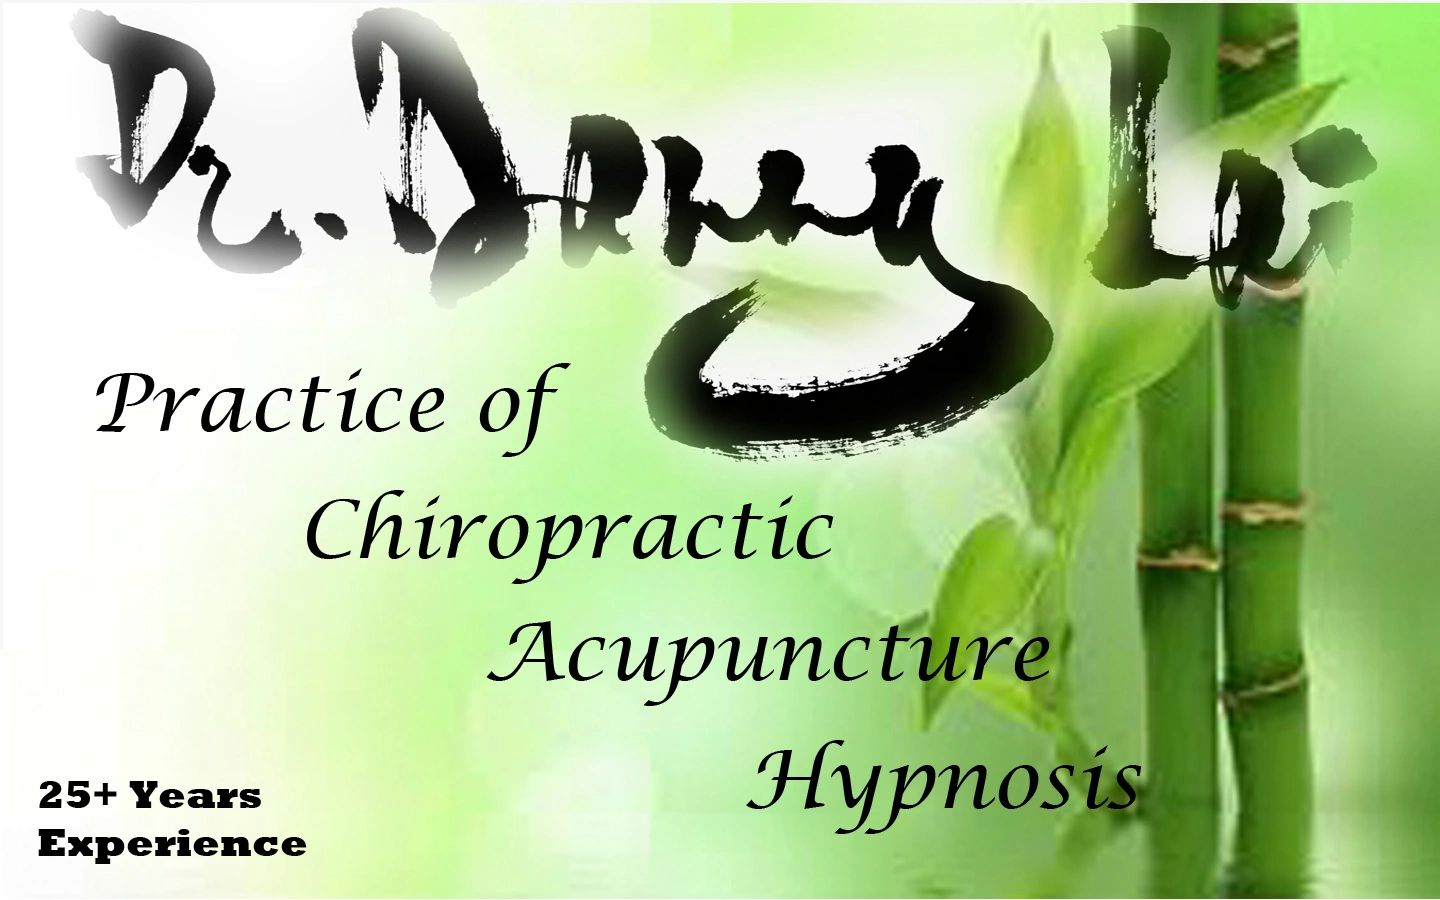 Chiropuncture, Inc. - Chiropractors, Acupuncture, Back Pain